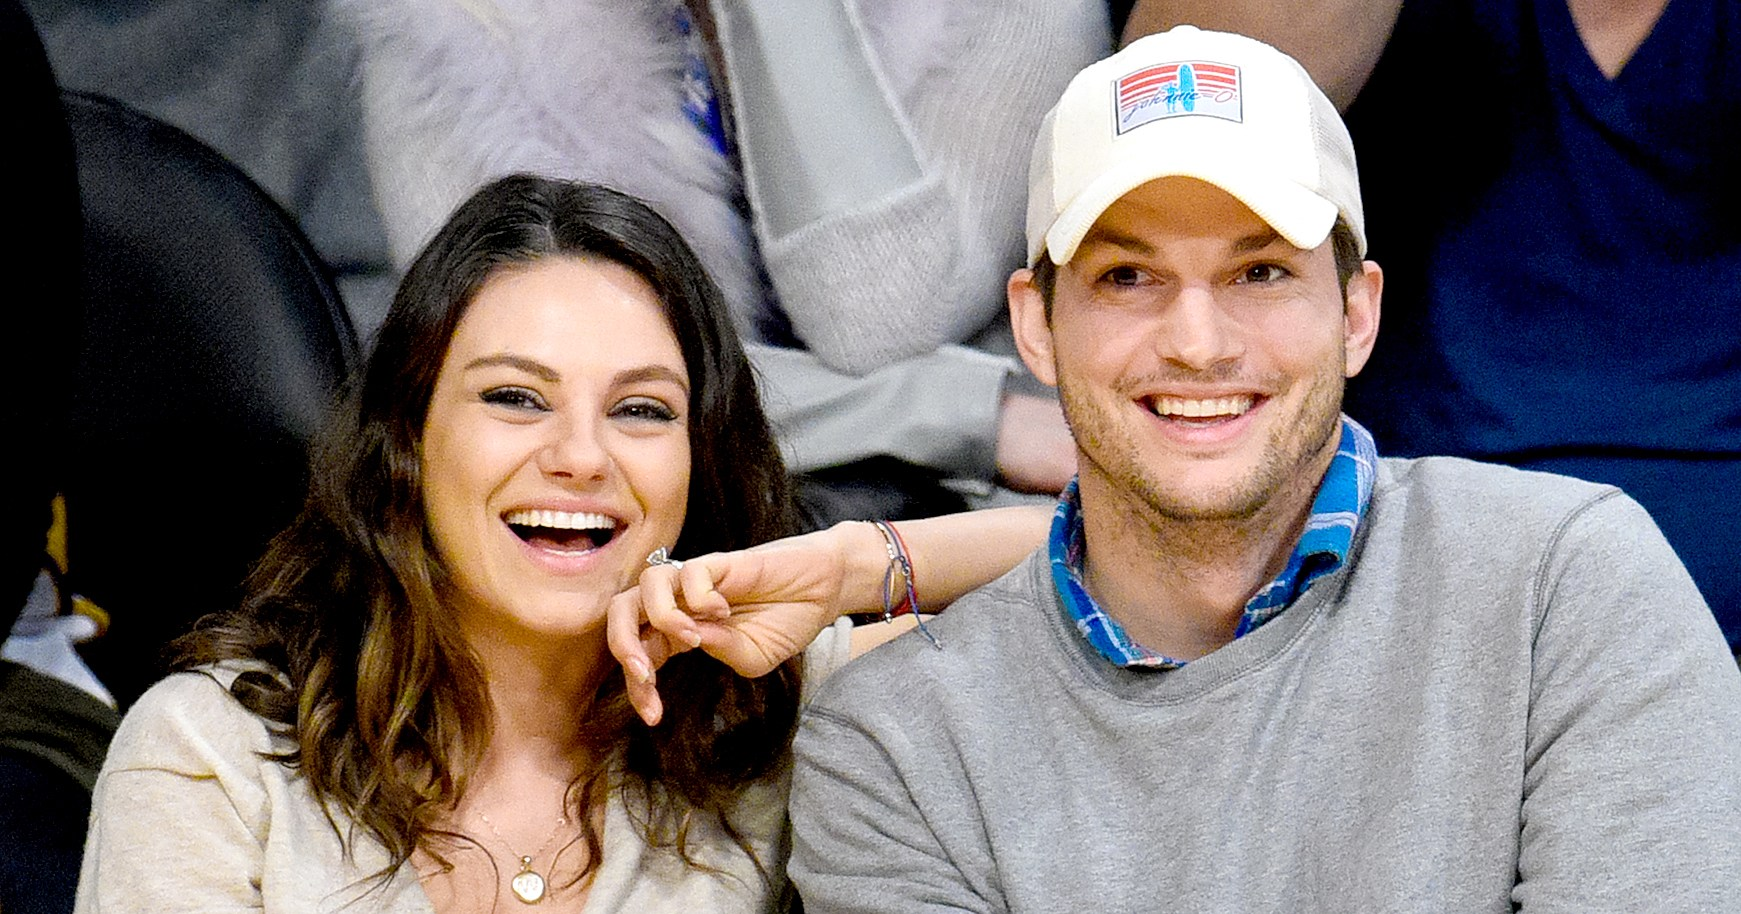 Ashton Kutcher Shares Photo of Son Dimitri Wearing 'That '70s Show' Shirt Featuring Himself and Mila Kunis